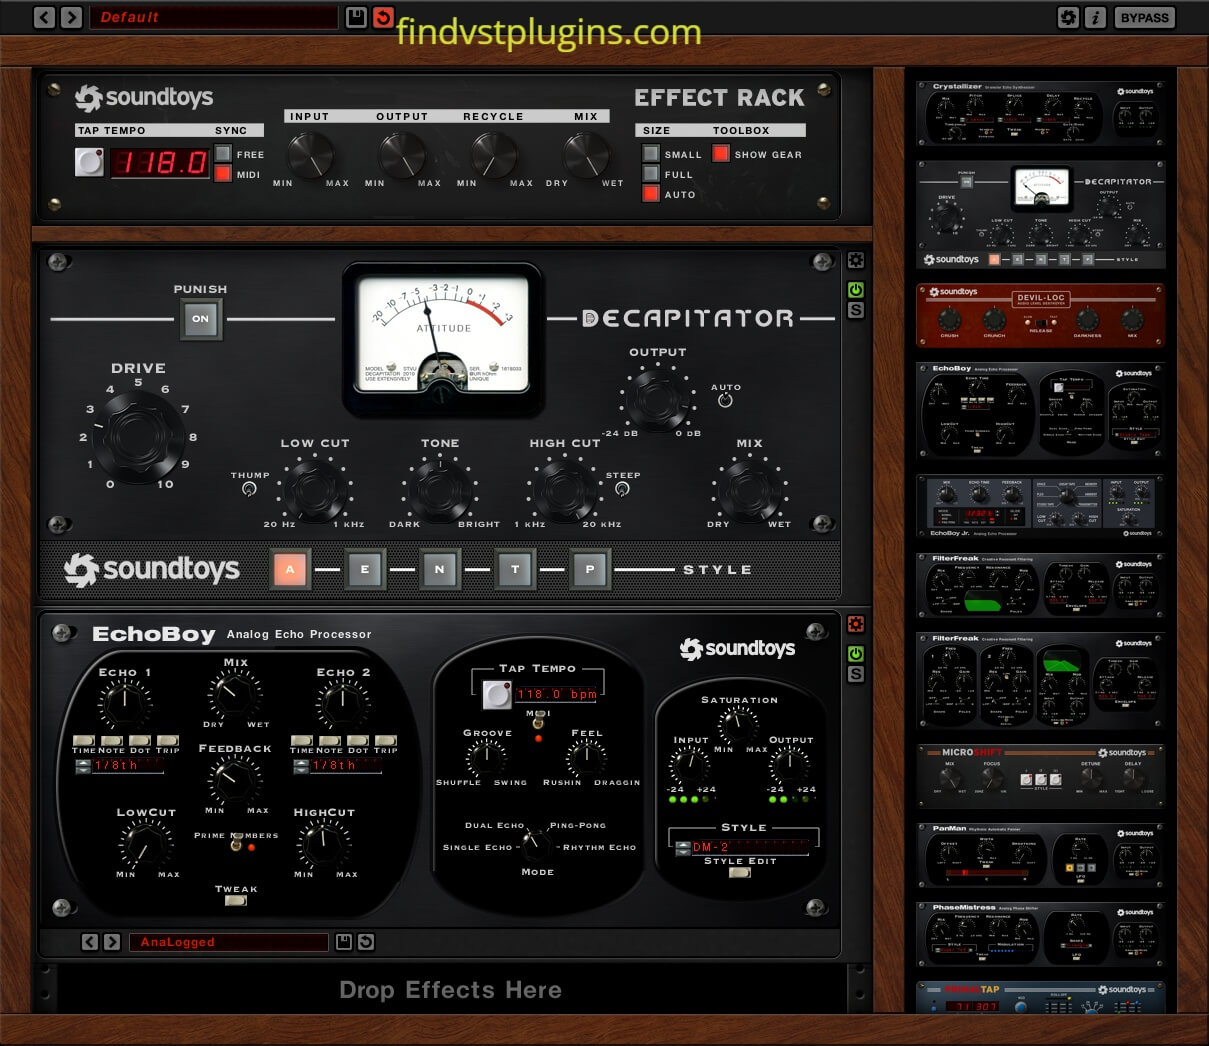 Soundtoys 5.3.2 Latest Free Download